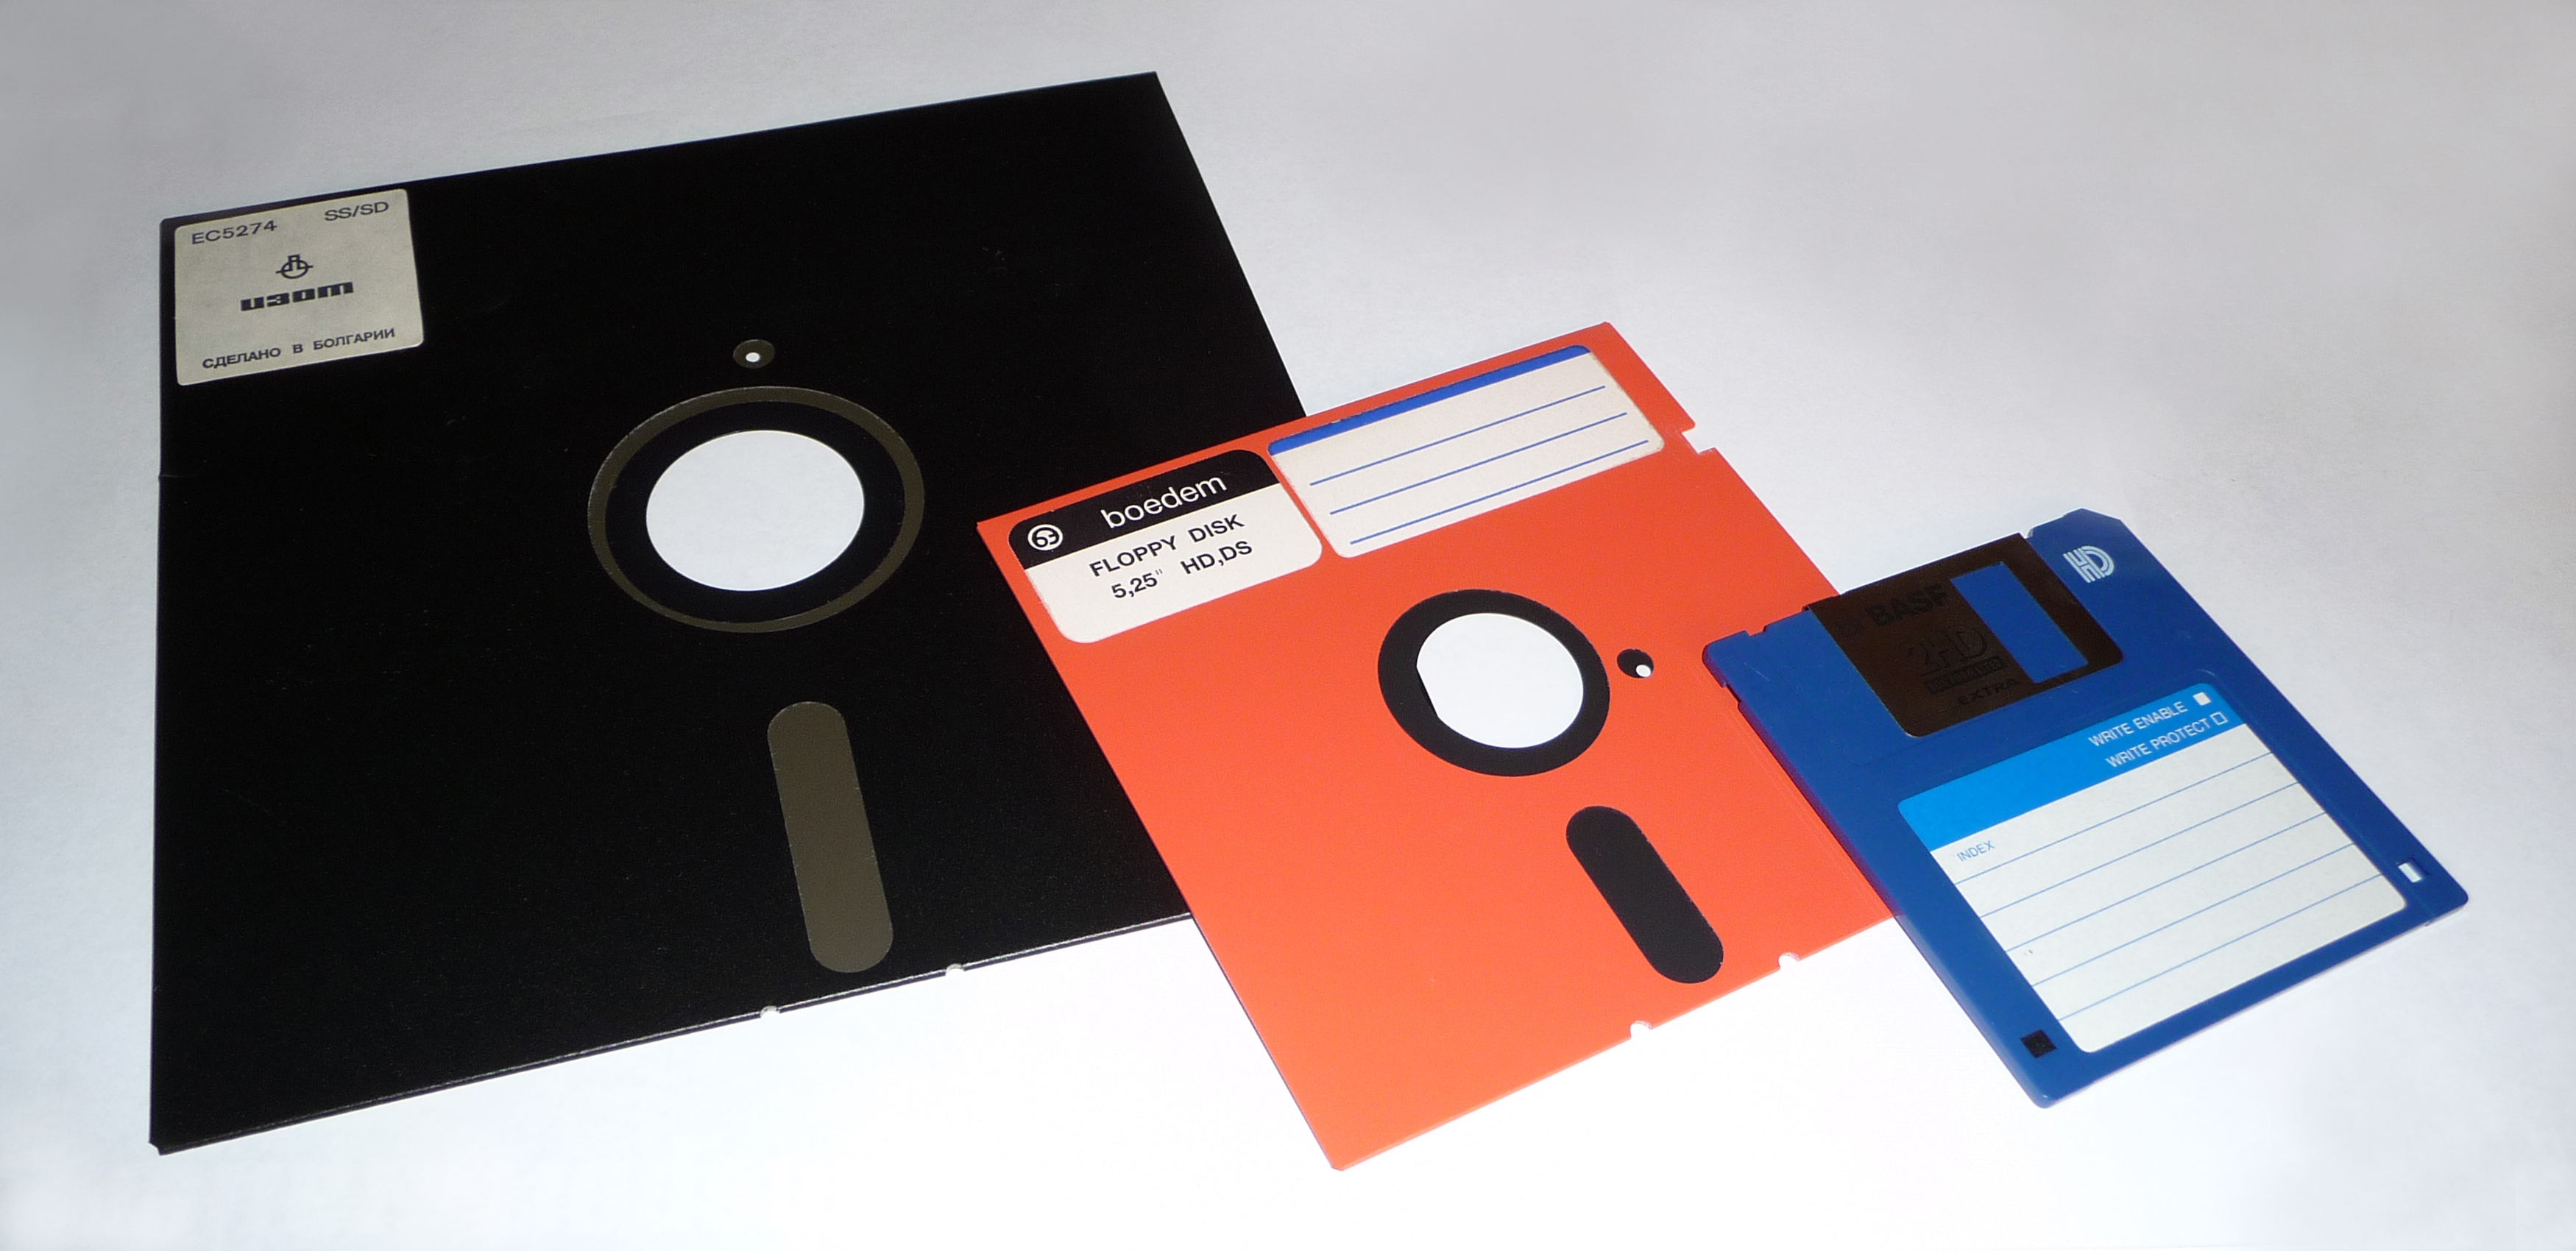 Extinct Technology Part 1 | Instant Messaging and Floppy Disks